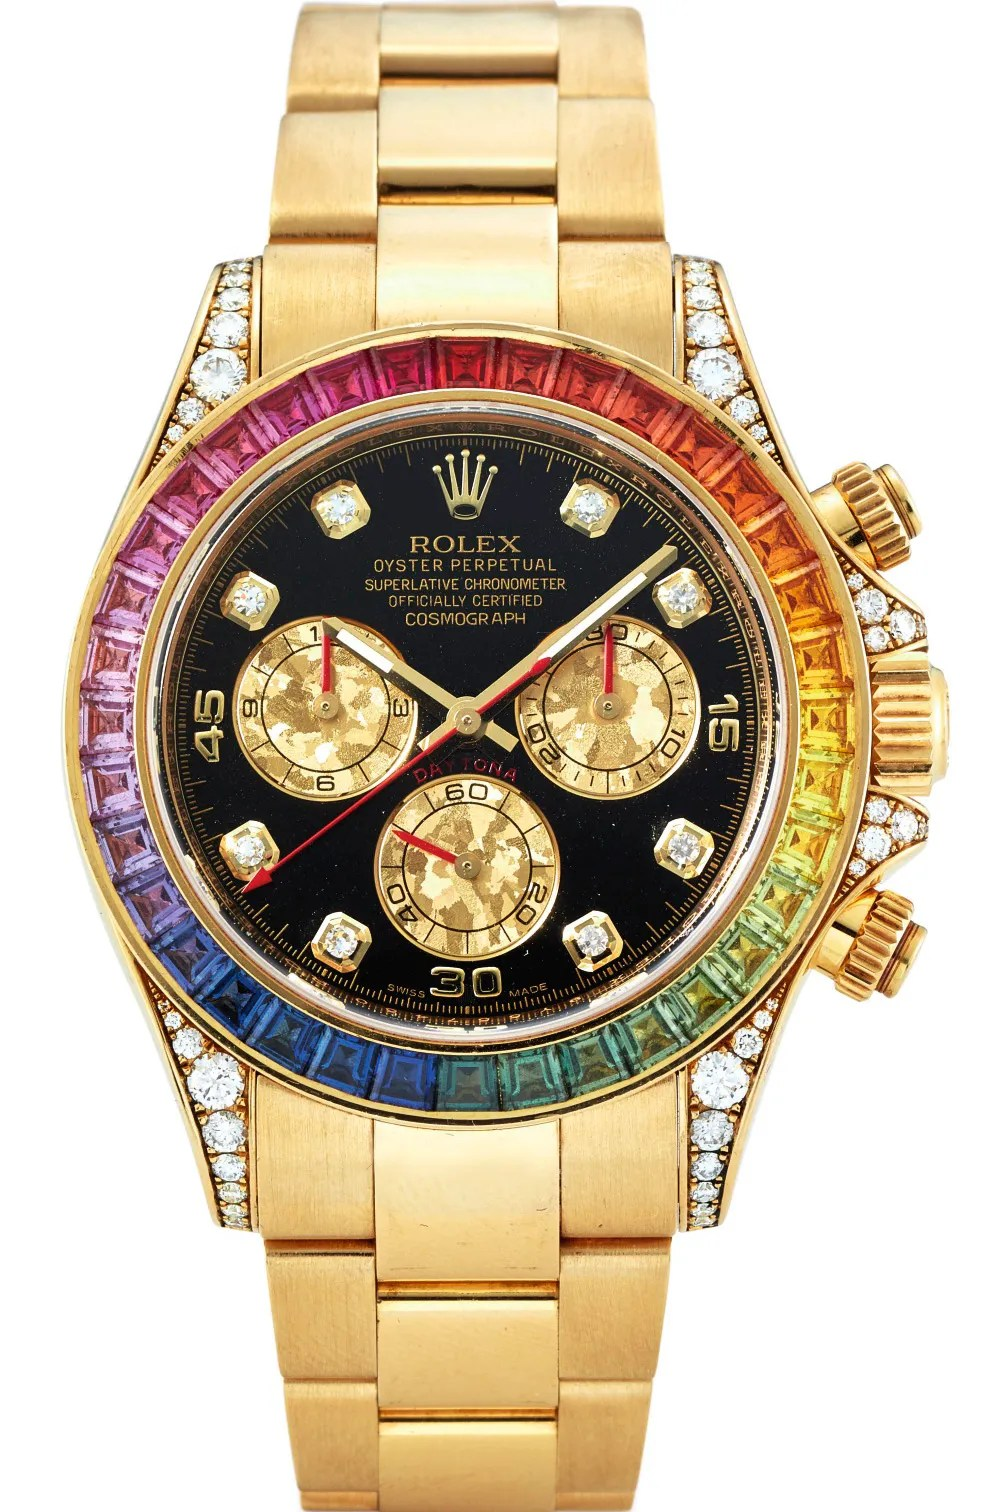 A gold watch with a rainbow dial